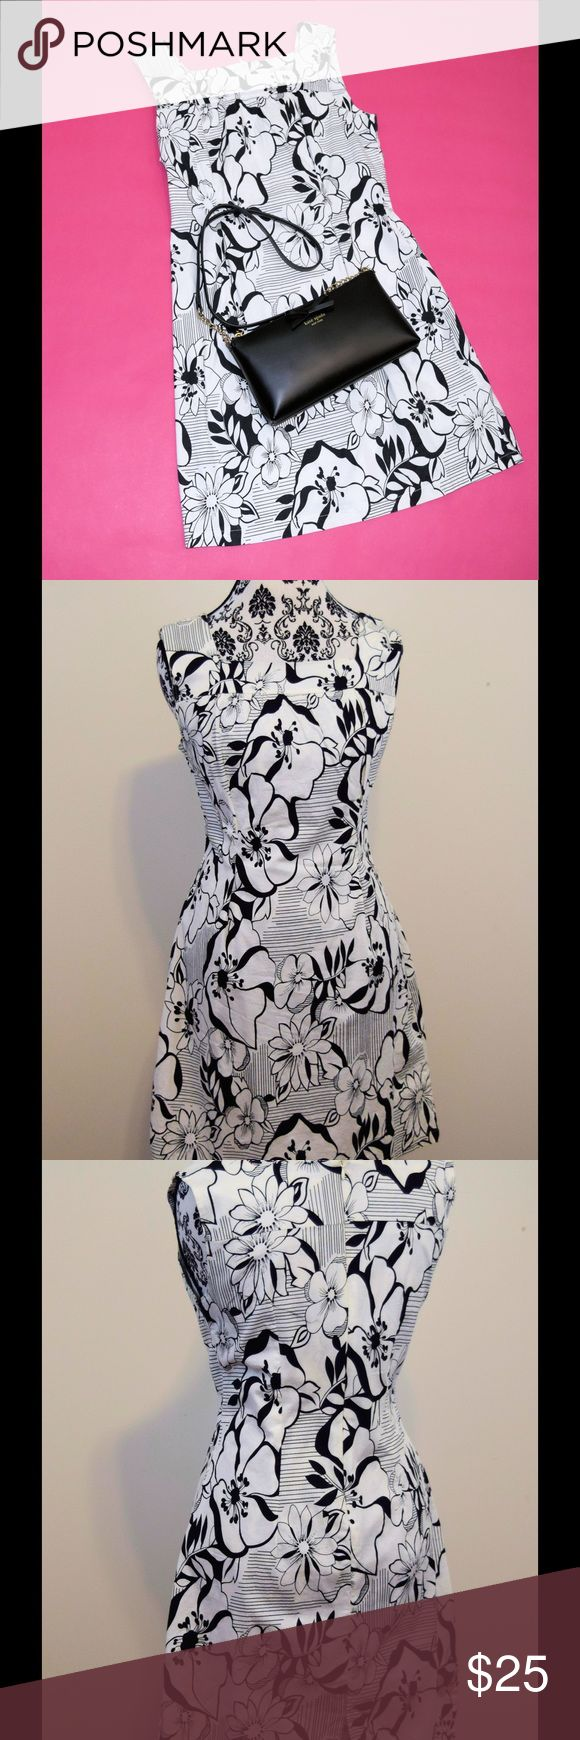 """Black & White Floral Dress Like new! Worn once for only a few hours! Black & white floral pattern sleeveless dress. Flattering square neckline. Size L juniors. Approx. 34"""" length from shoulder. 95% cotton, 5% spandex. Complete the look- purse also available in a separate listing. Bundle the outfit and save 10%! Derek Heart Dresses"""